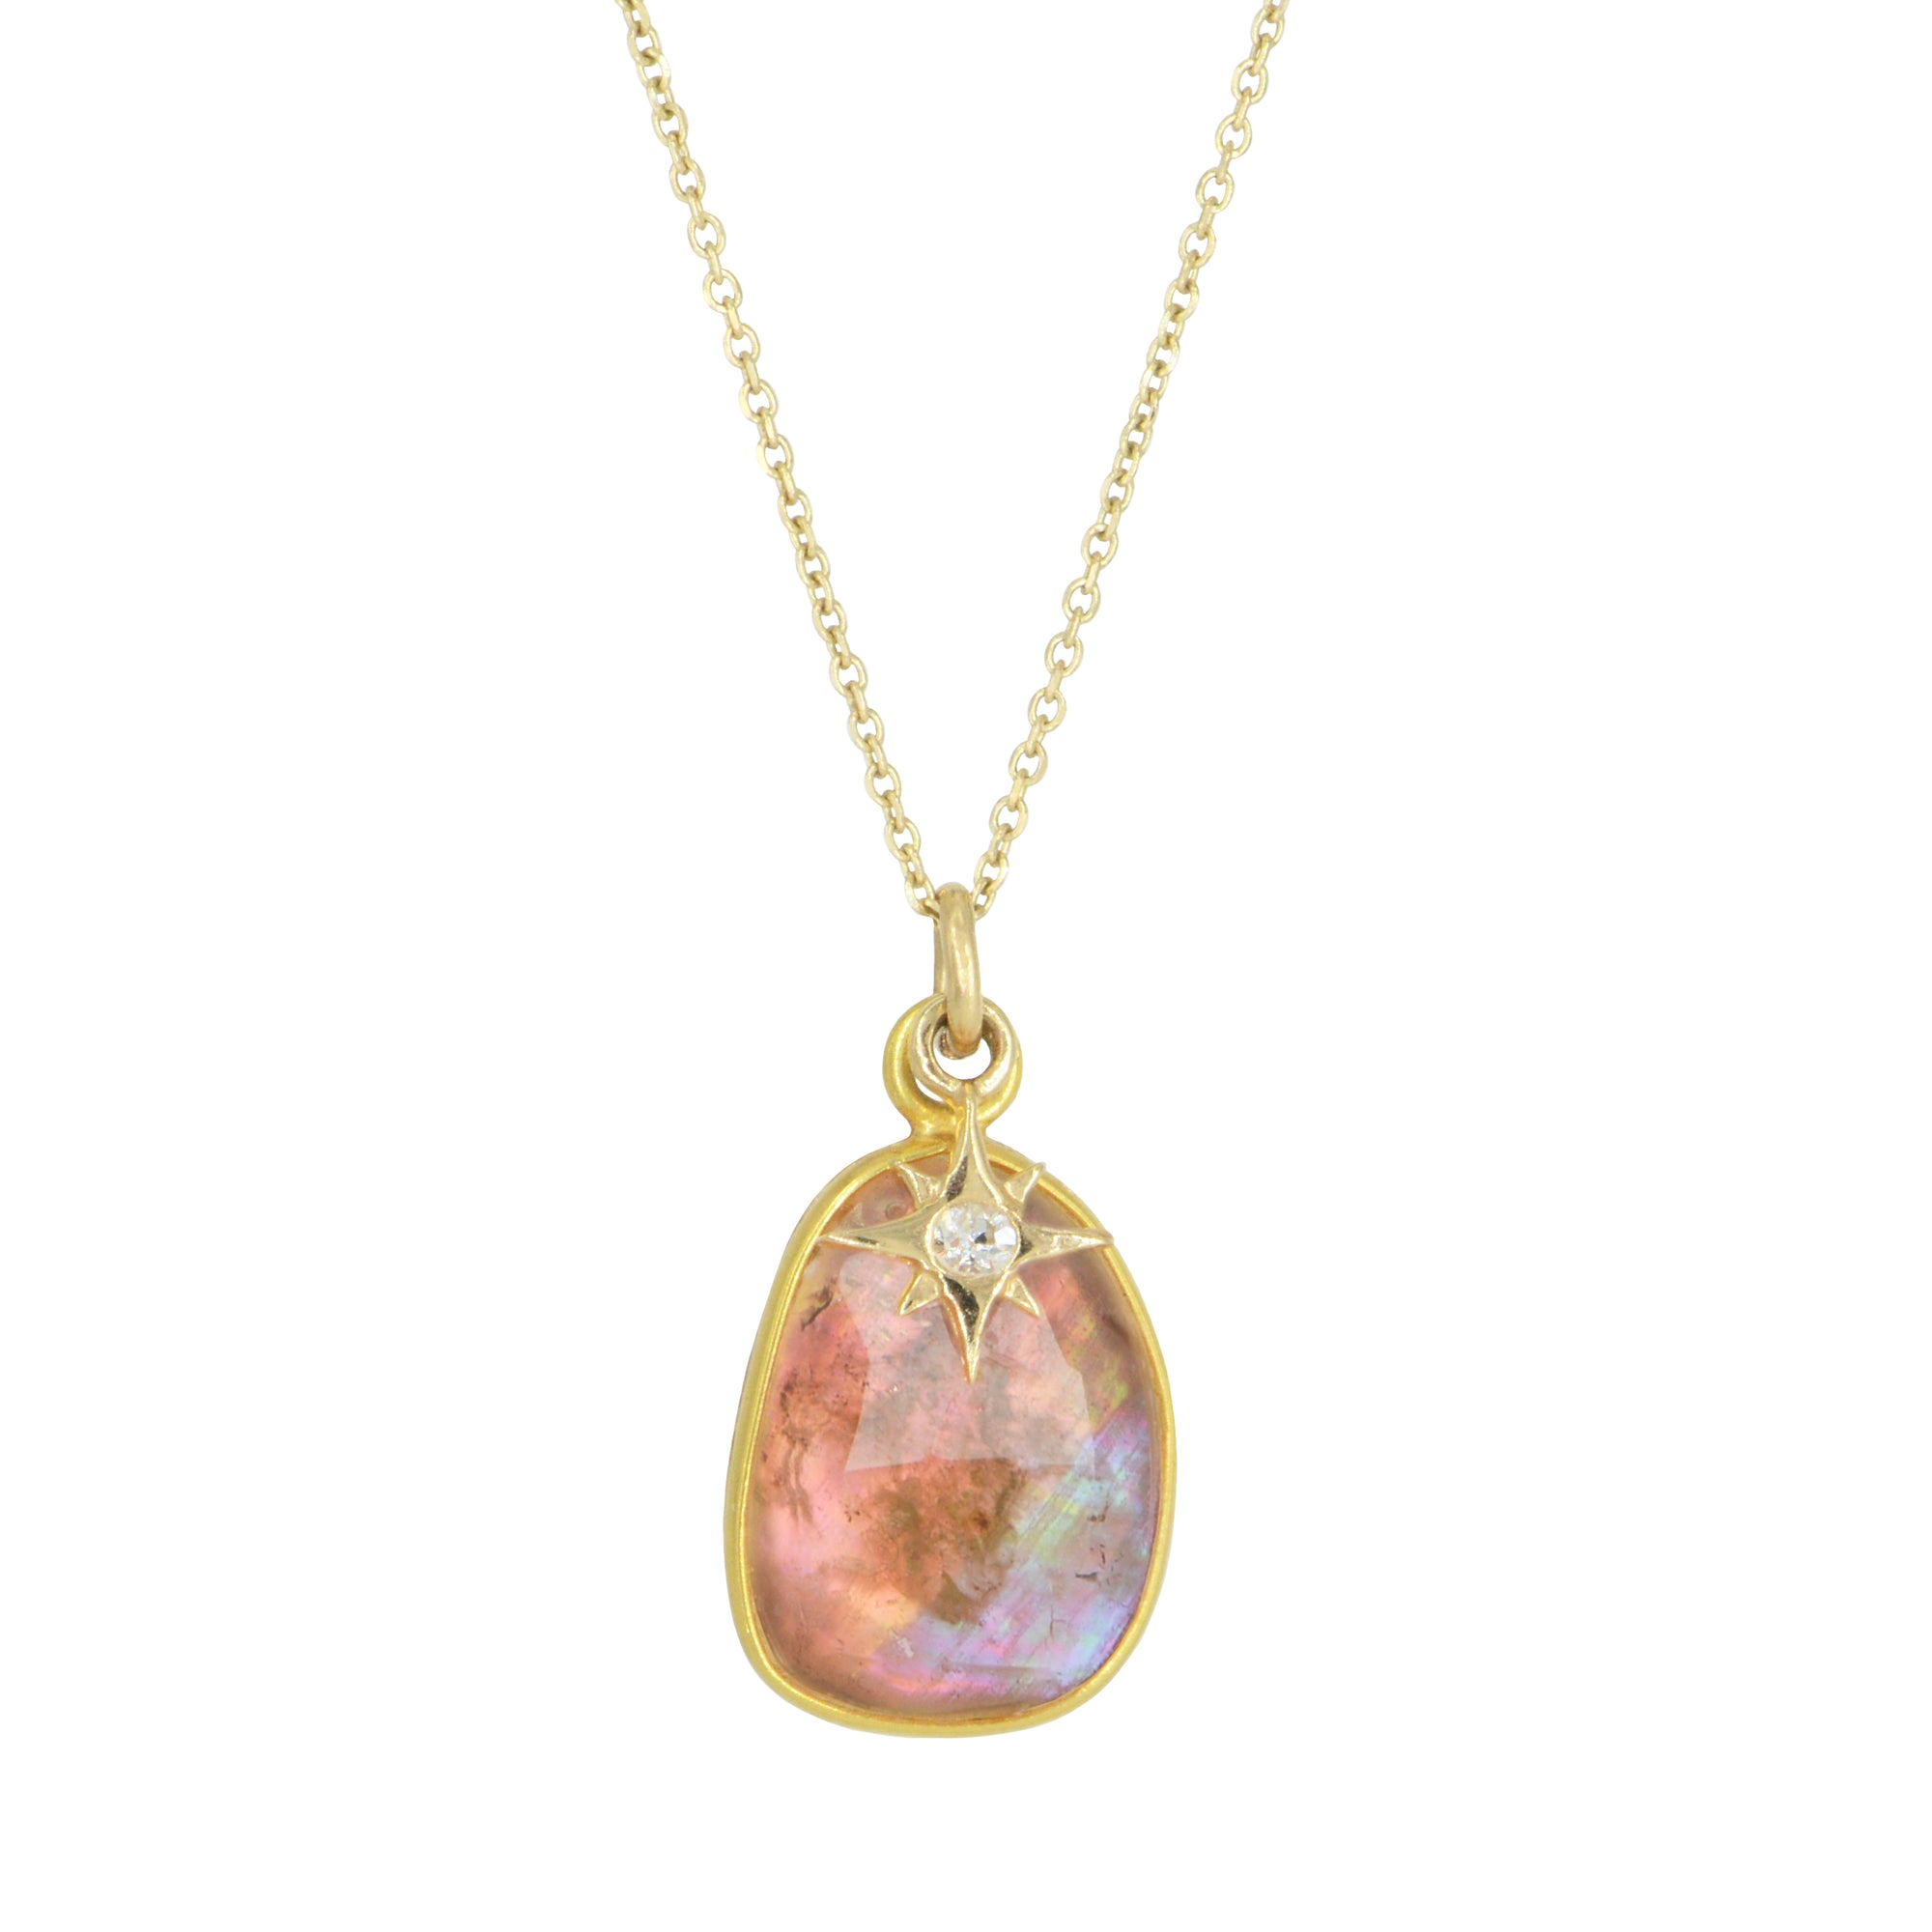 Sunset Tourmaline Necklace With Diamond Star Charm